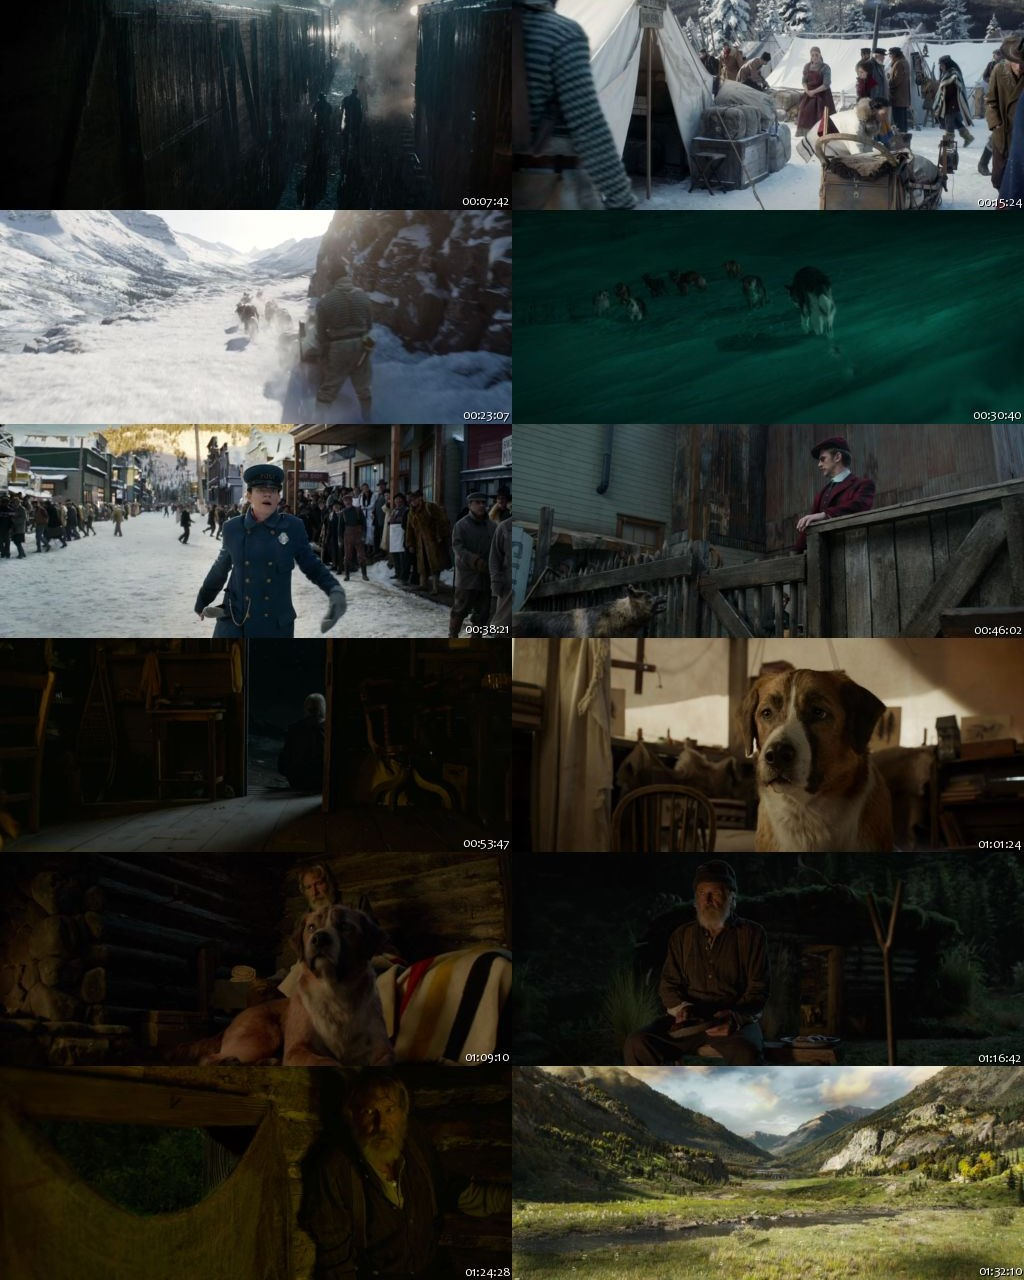 The Call Of The Wild 2020 HDRip 720p [English]